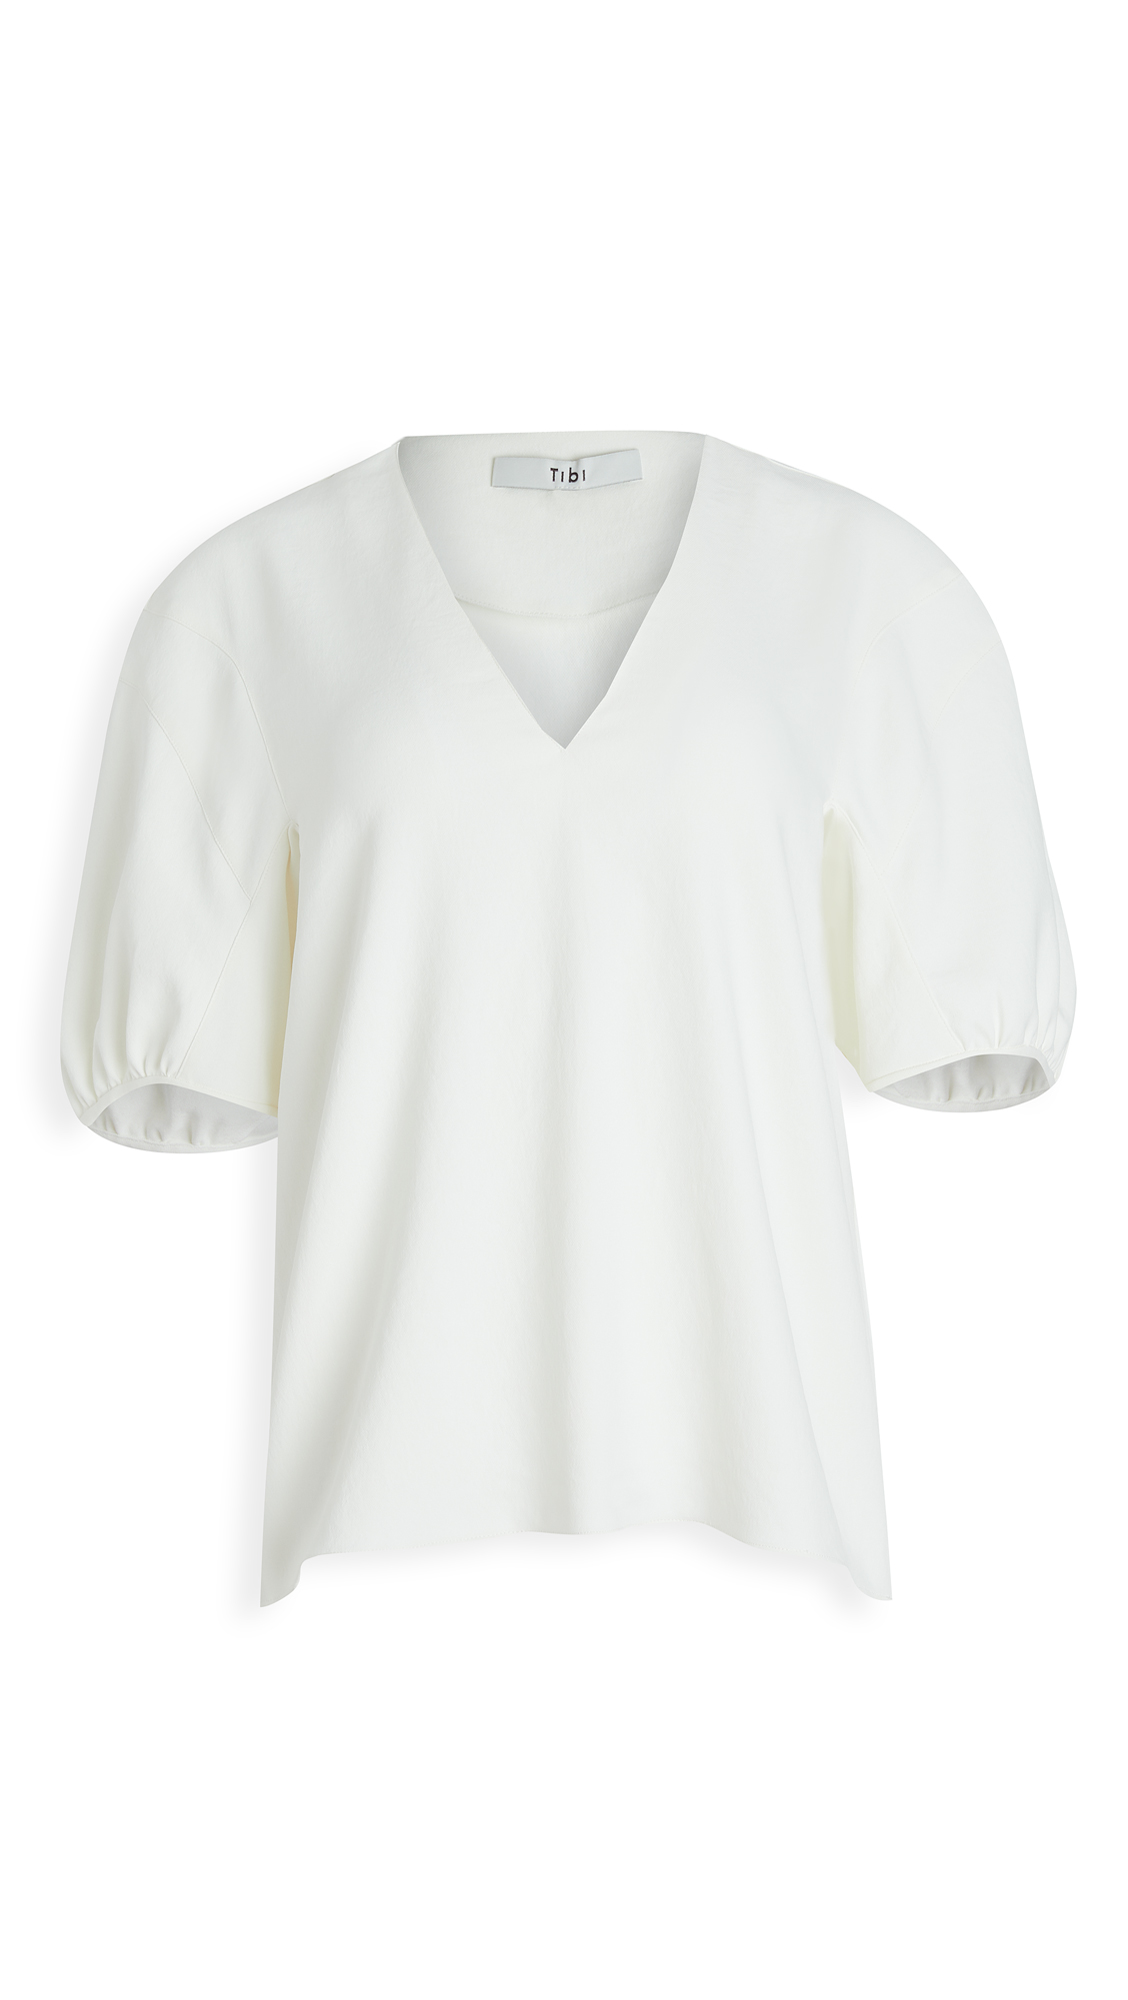 Tibi Tops CHALKY DRAPE V NECK TOP